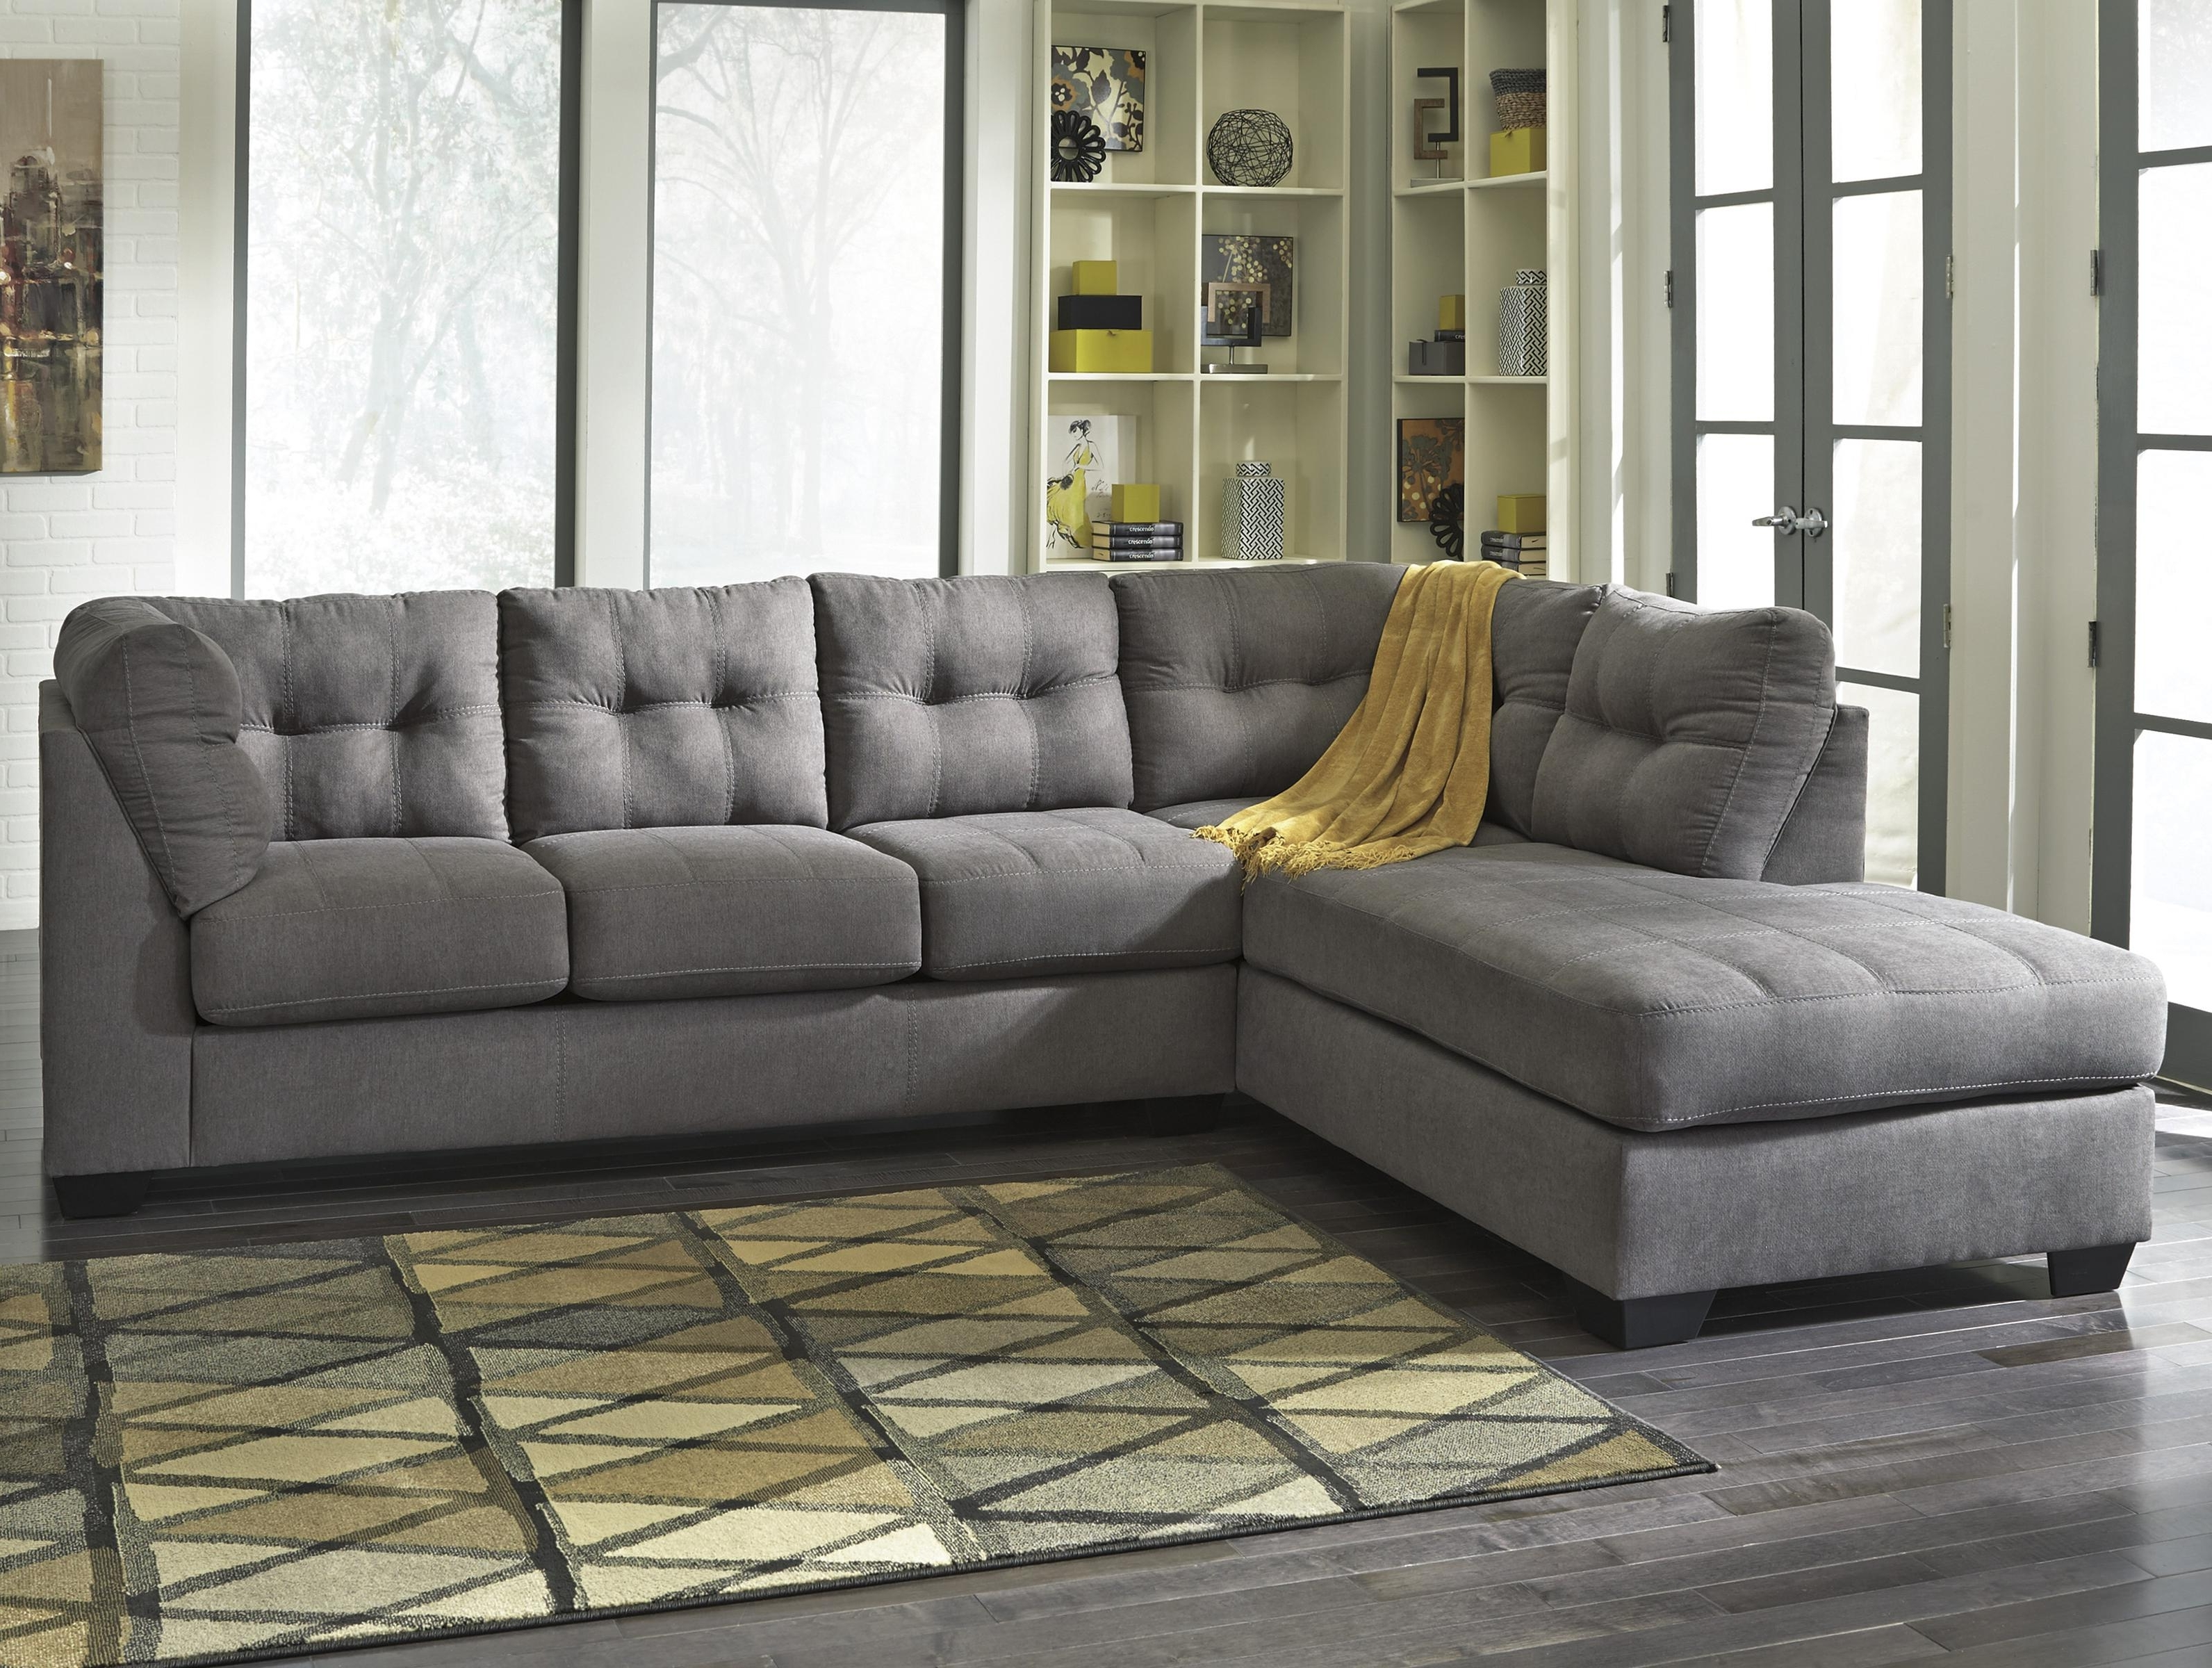 Benchcraftashley Maier – Charcoal 2 Piece Sectional With Left For Preferred Memphis Sectional Sofas (View 1 of 15)